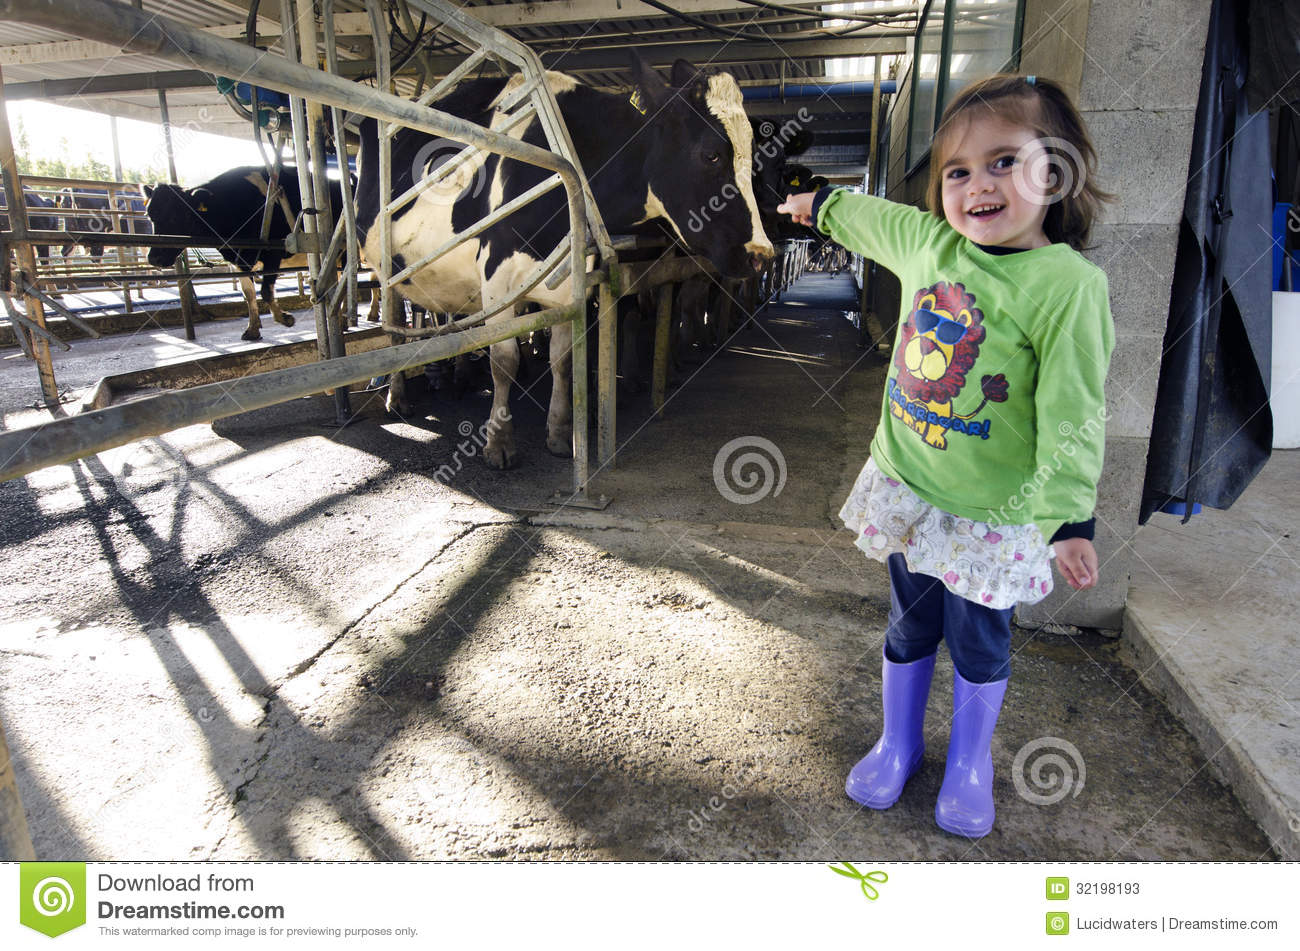 image Dairy farming part 4 of 4